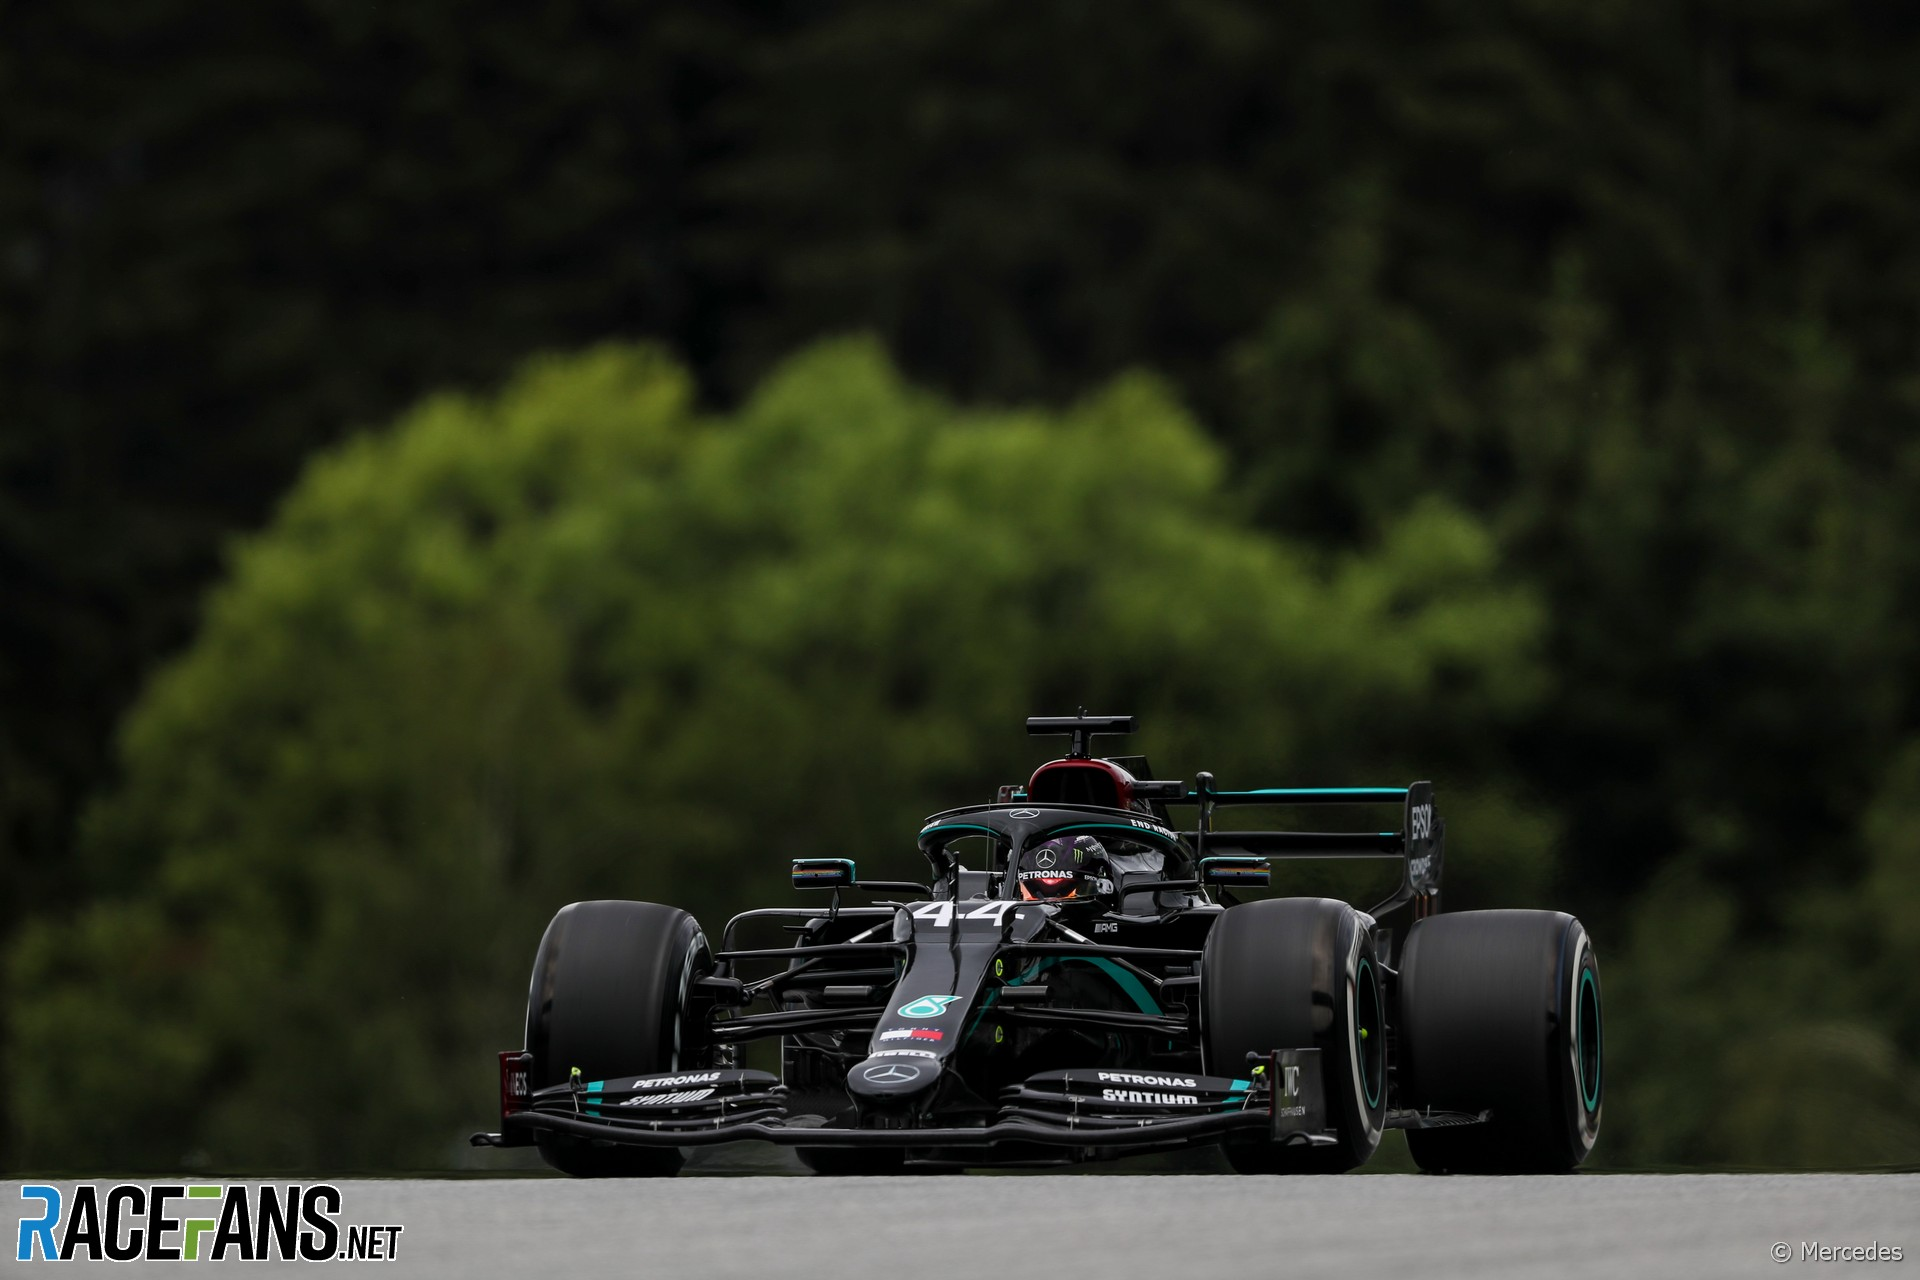 Hamilton leads Mercedes one-two, Ferrari only 10th in first practice · RaceFans